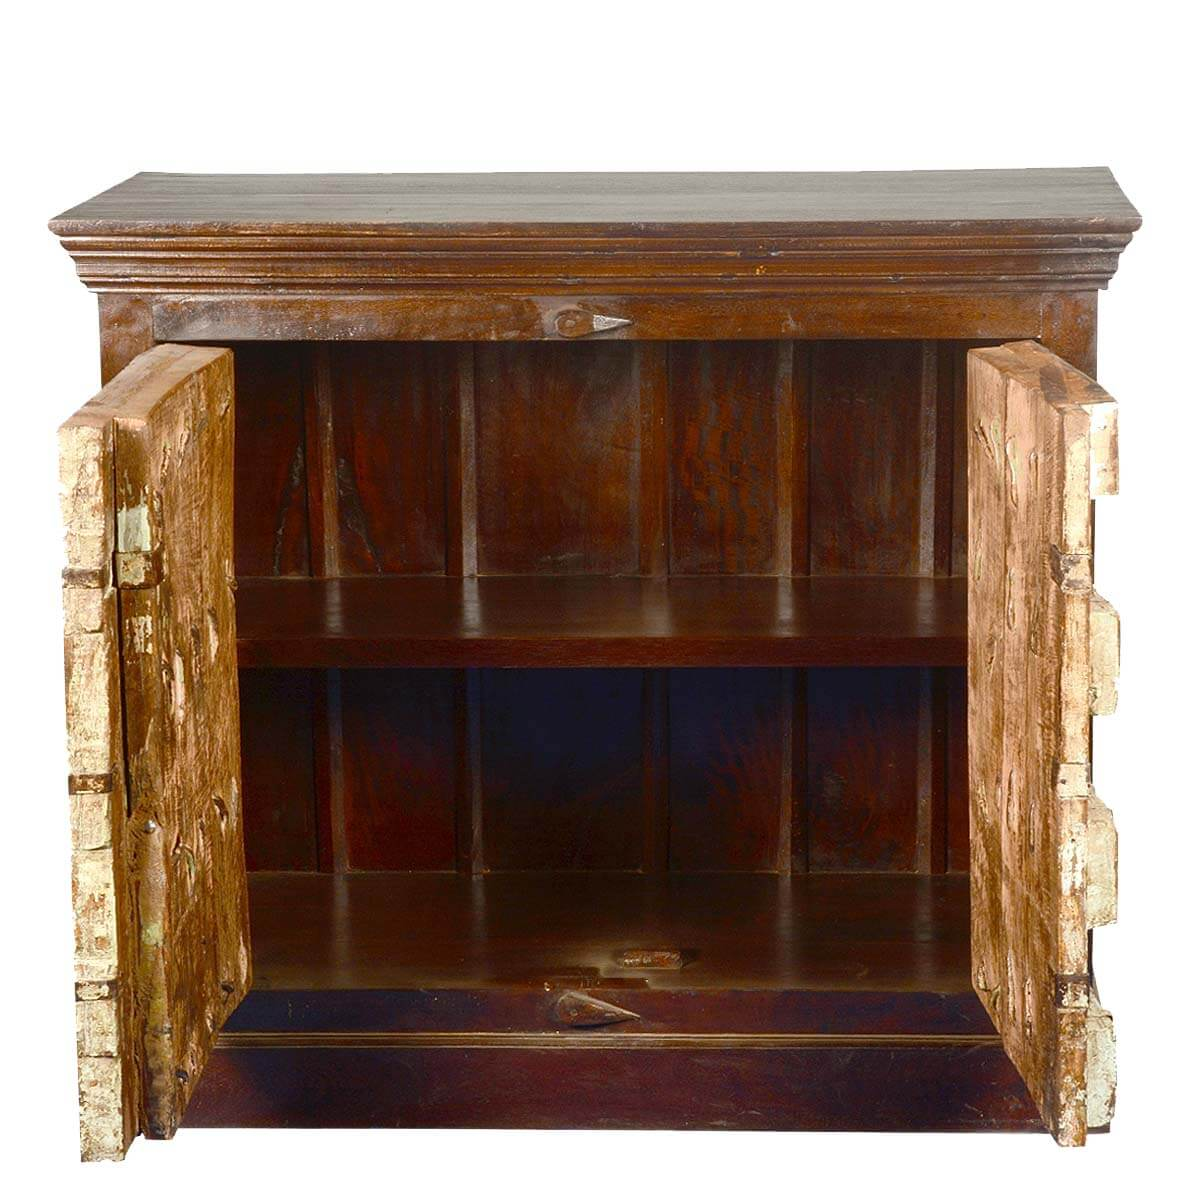 Gothic Teak Wood 2 Door Storage Accent Cabinet Buffet